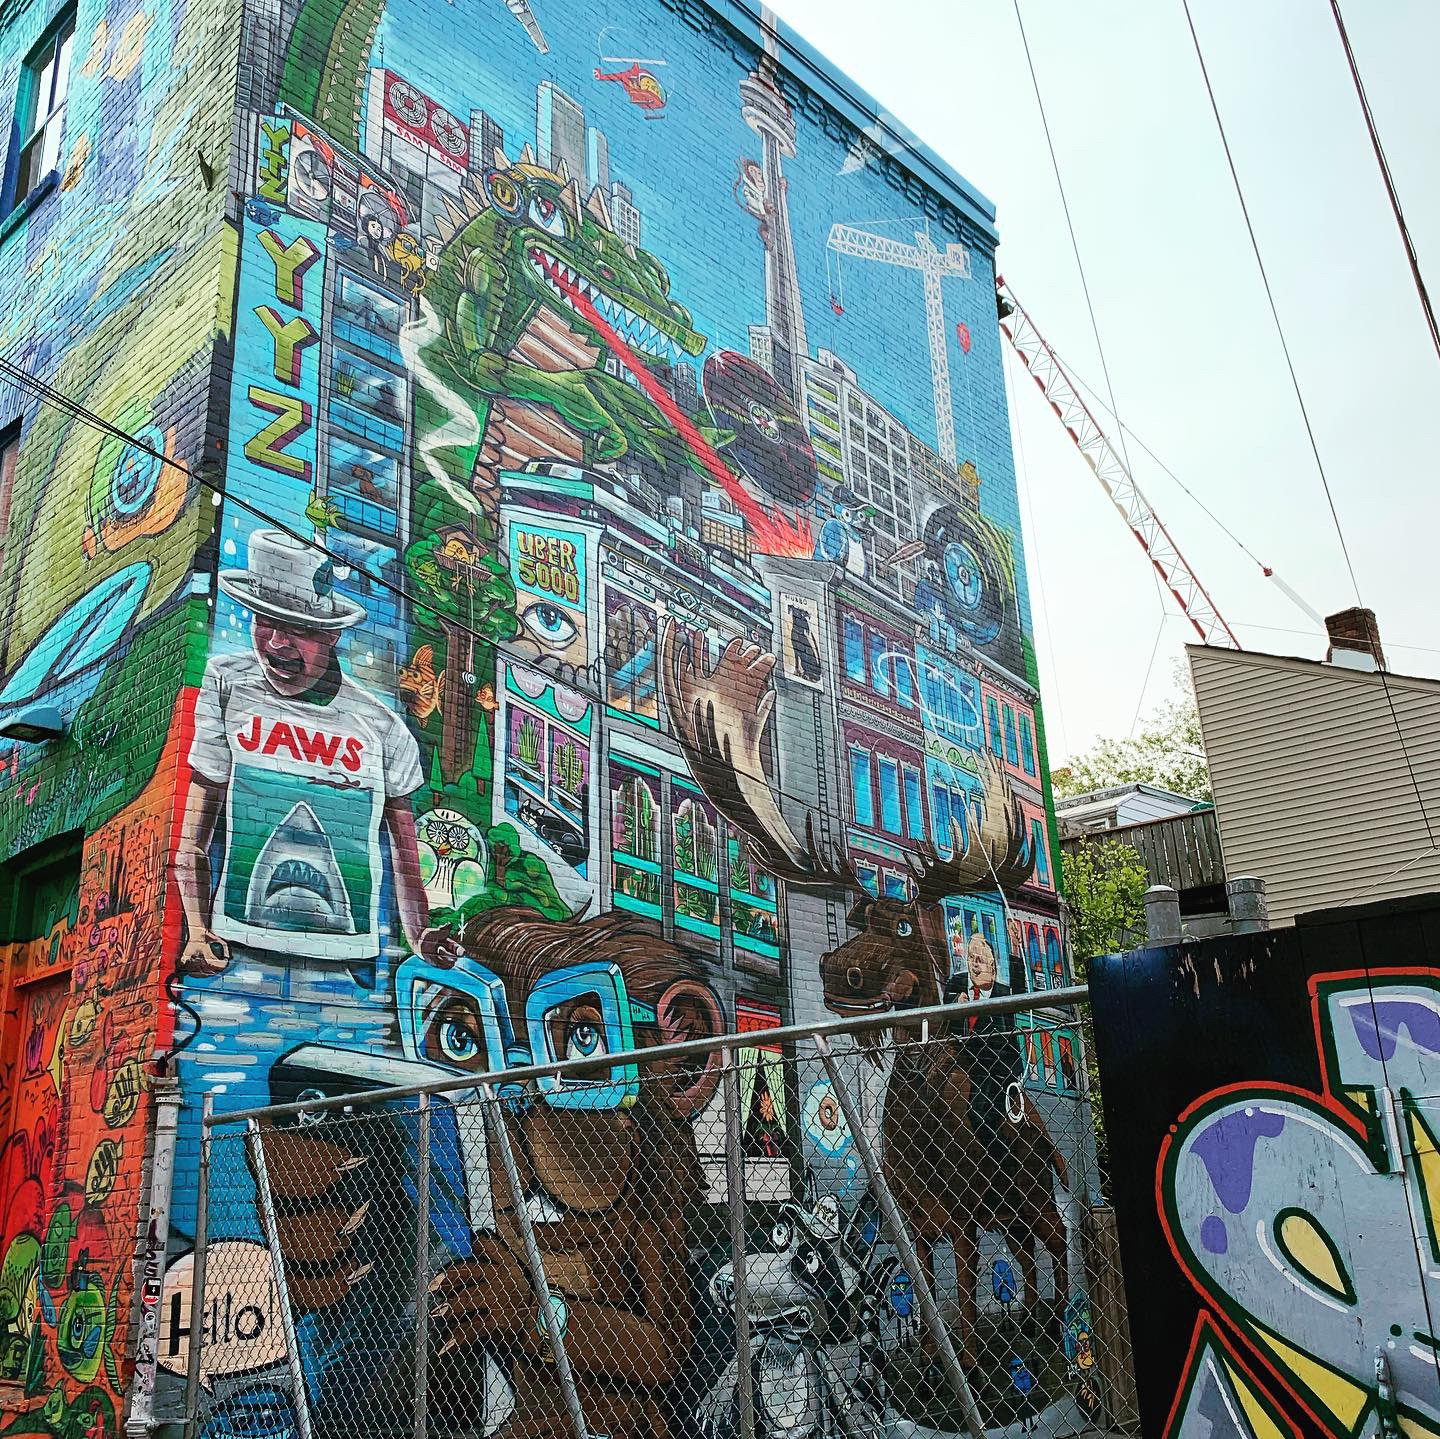 Graffiti Alley - awesome street art and also a way to walk off the delicious cookie from Le Gourmand